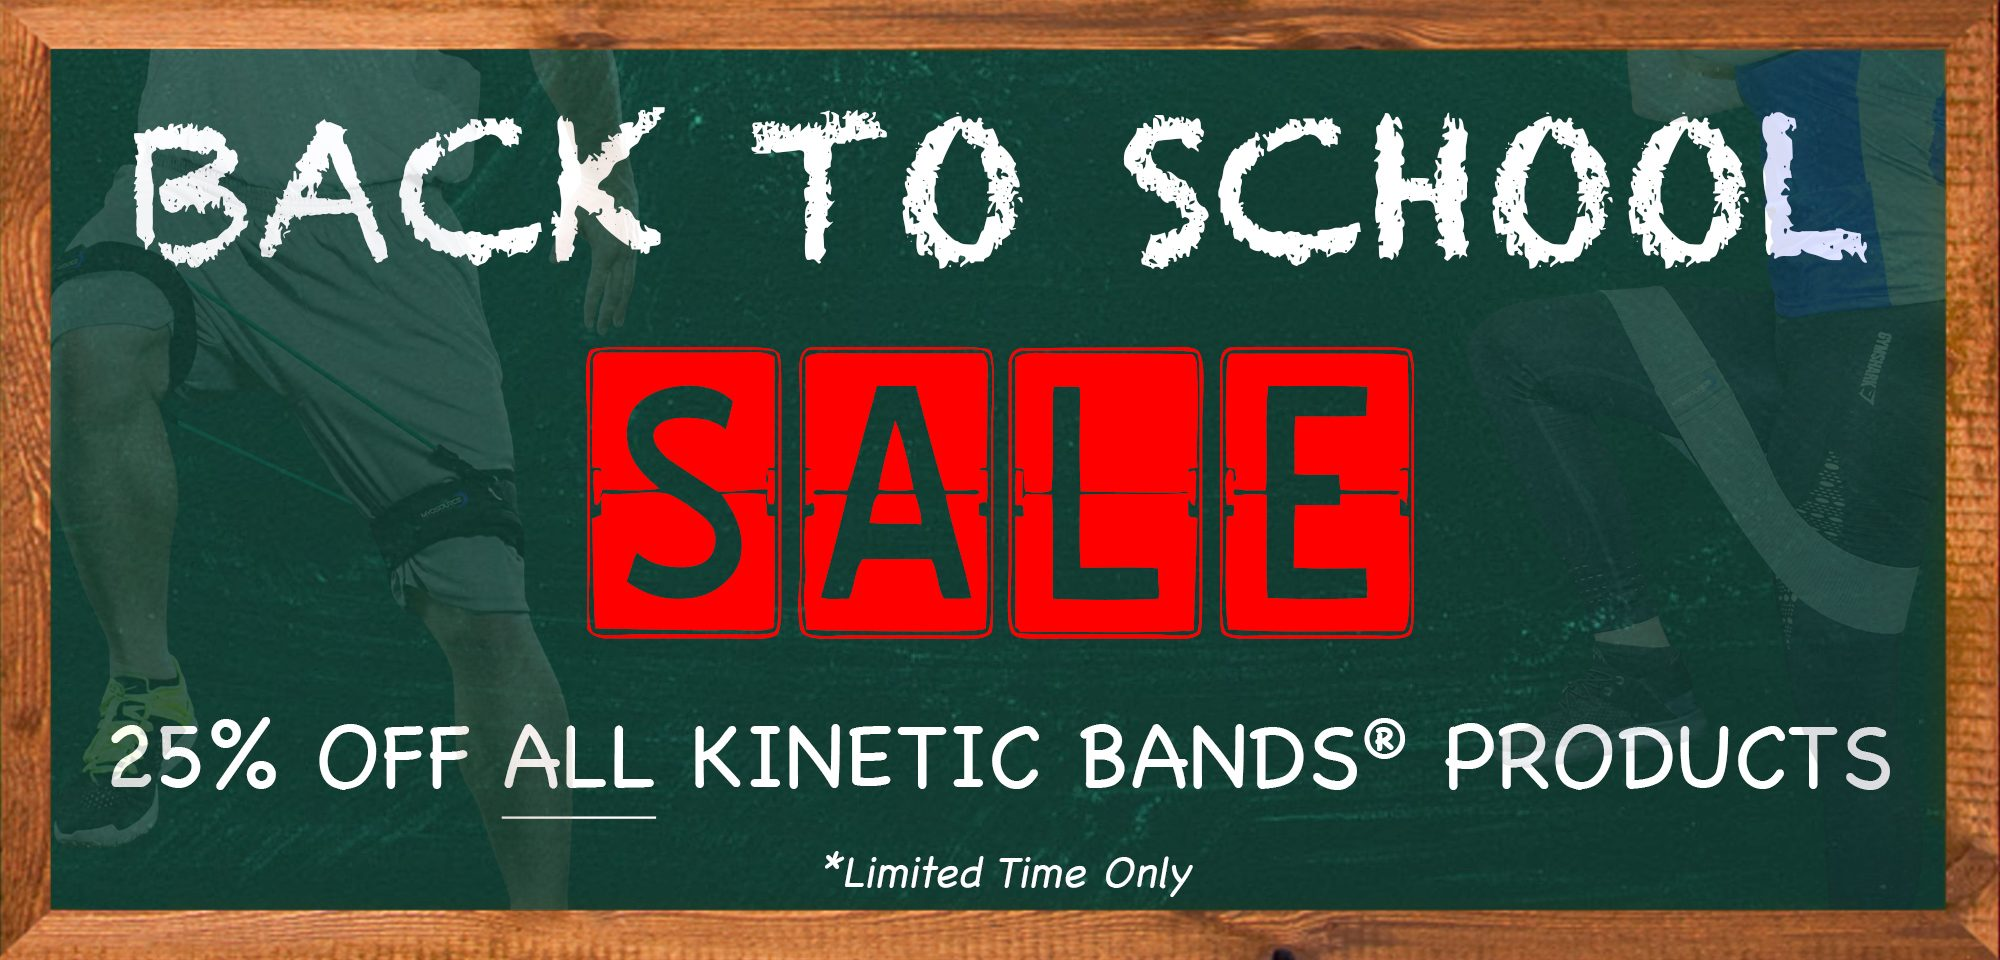 Back to School Sale. 25% off all Kinetic Bands Products. Limited Time Only!